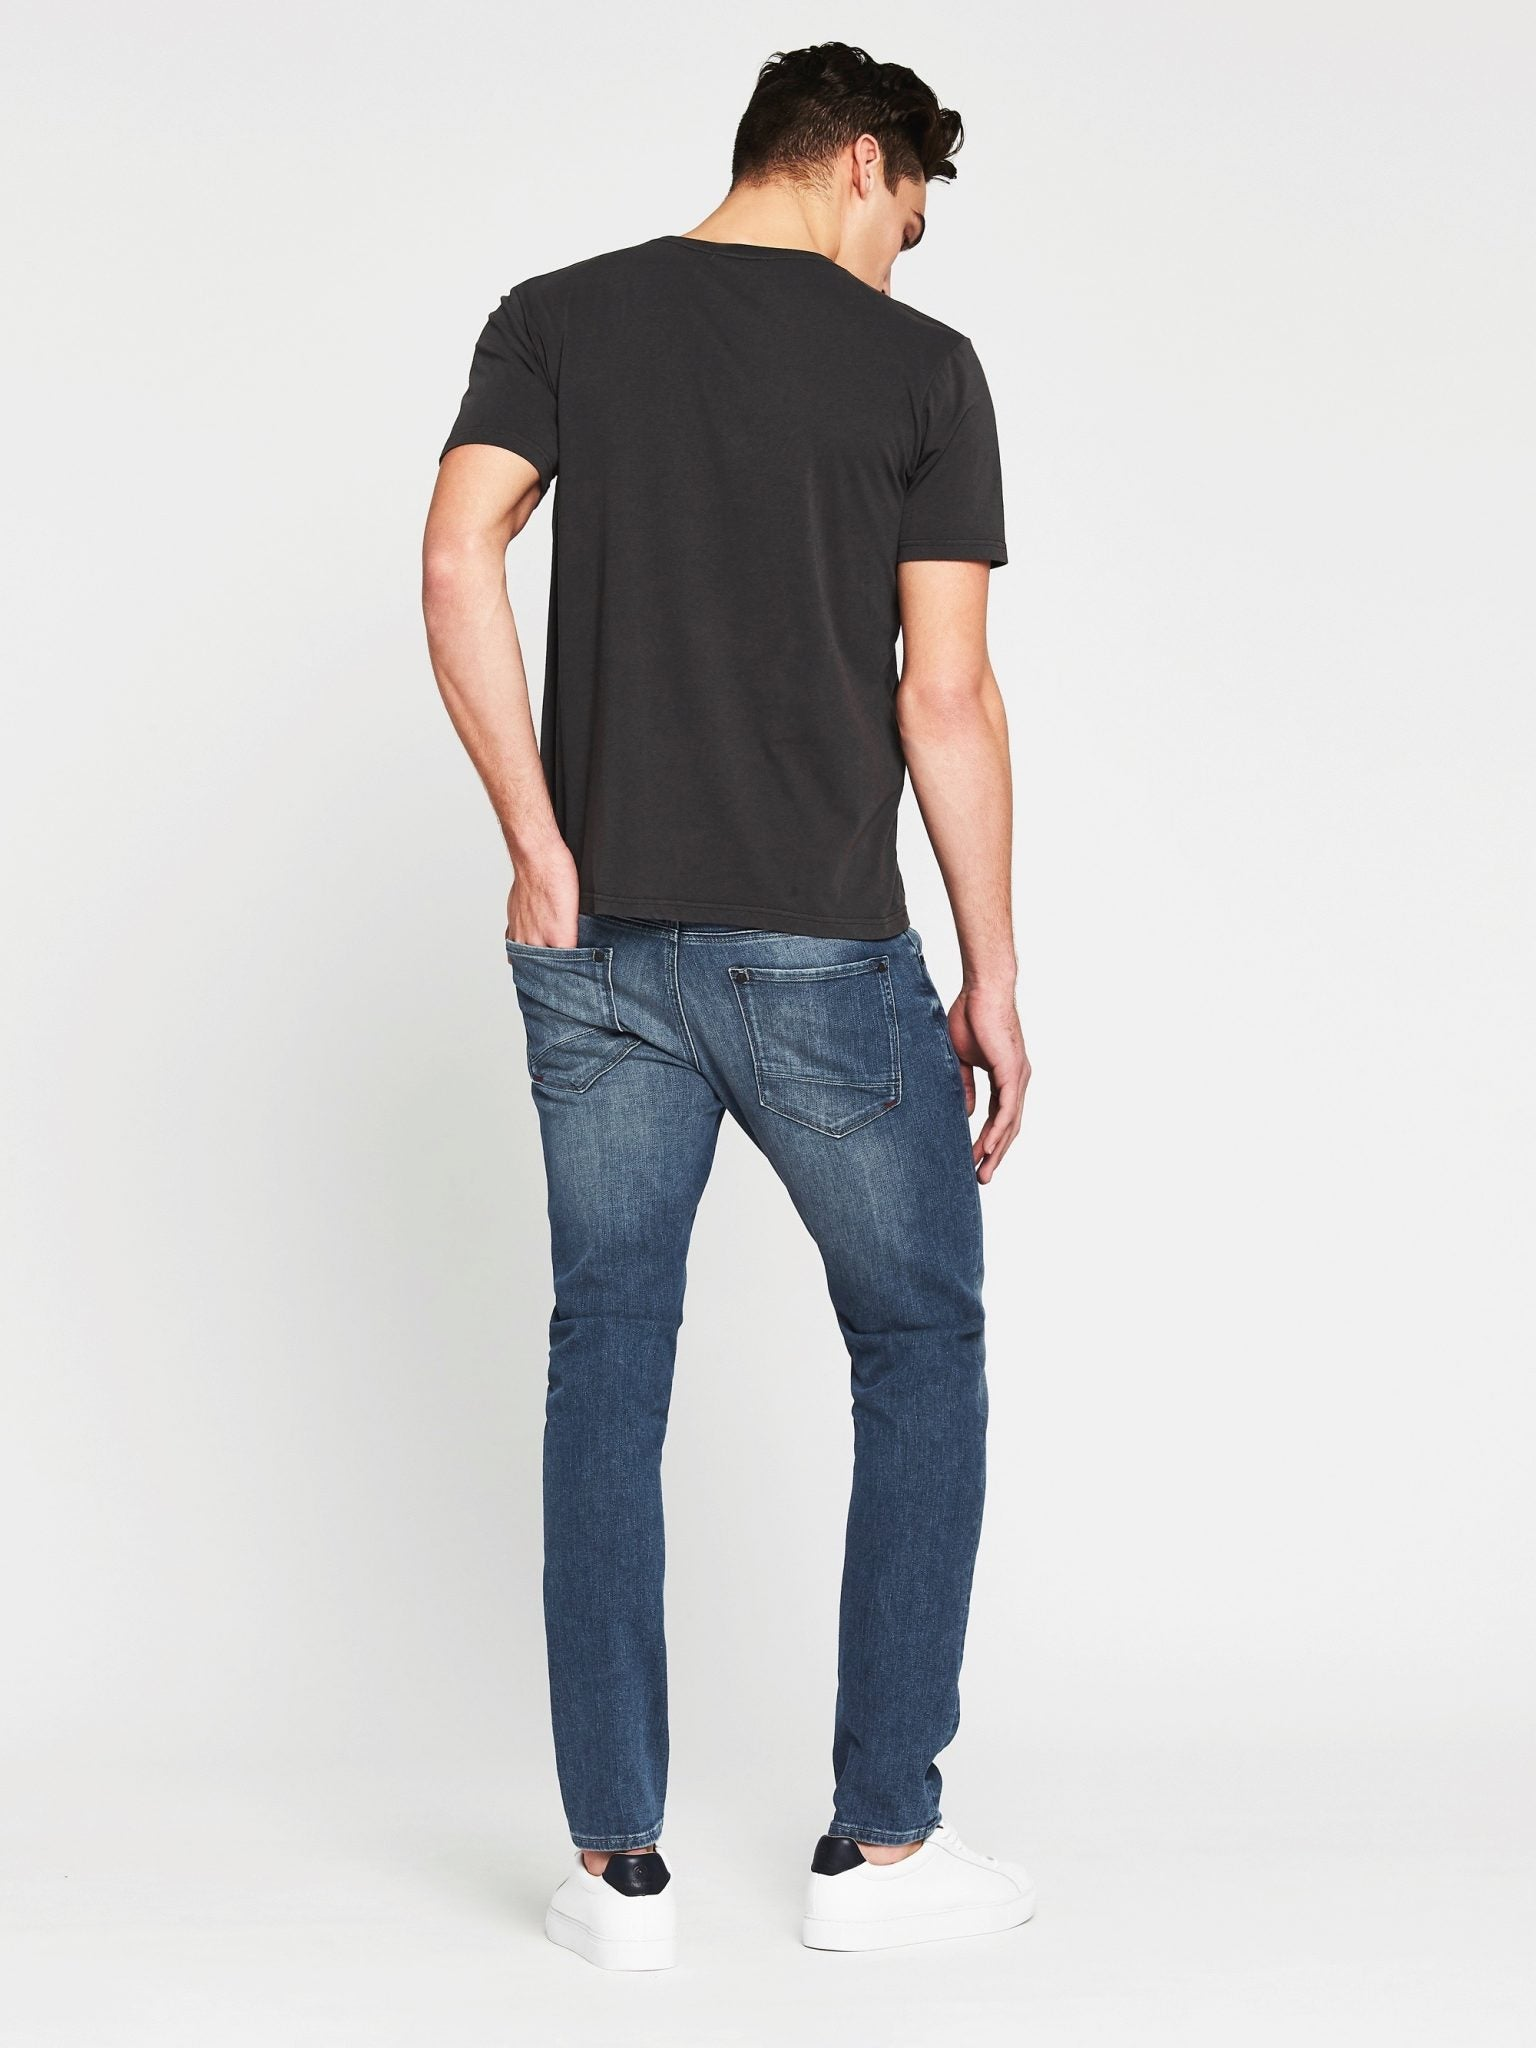 S26-LIAM-06001A0112-Washed-Black-ONG-18307-Mavi-871